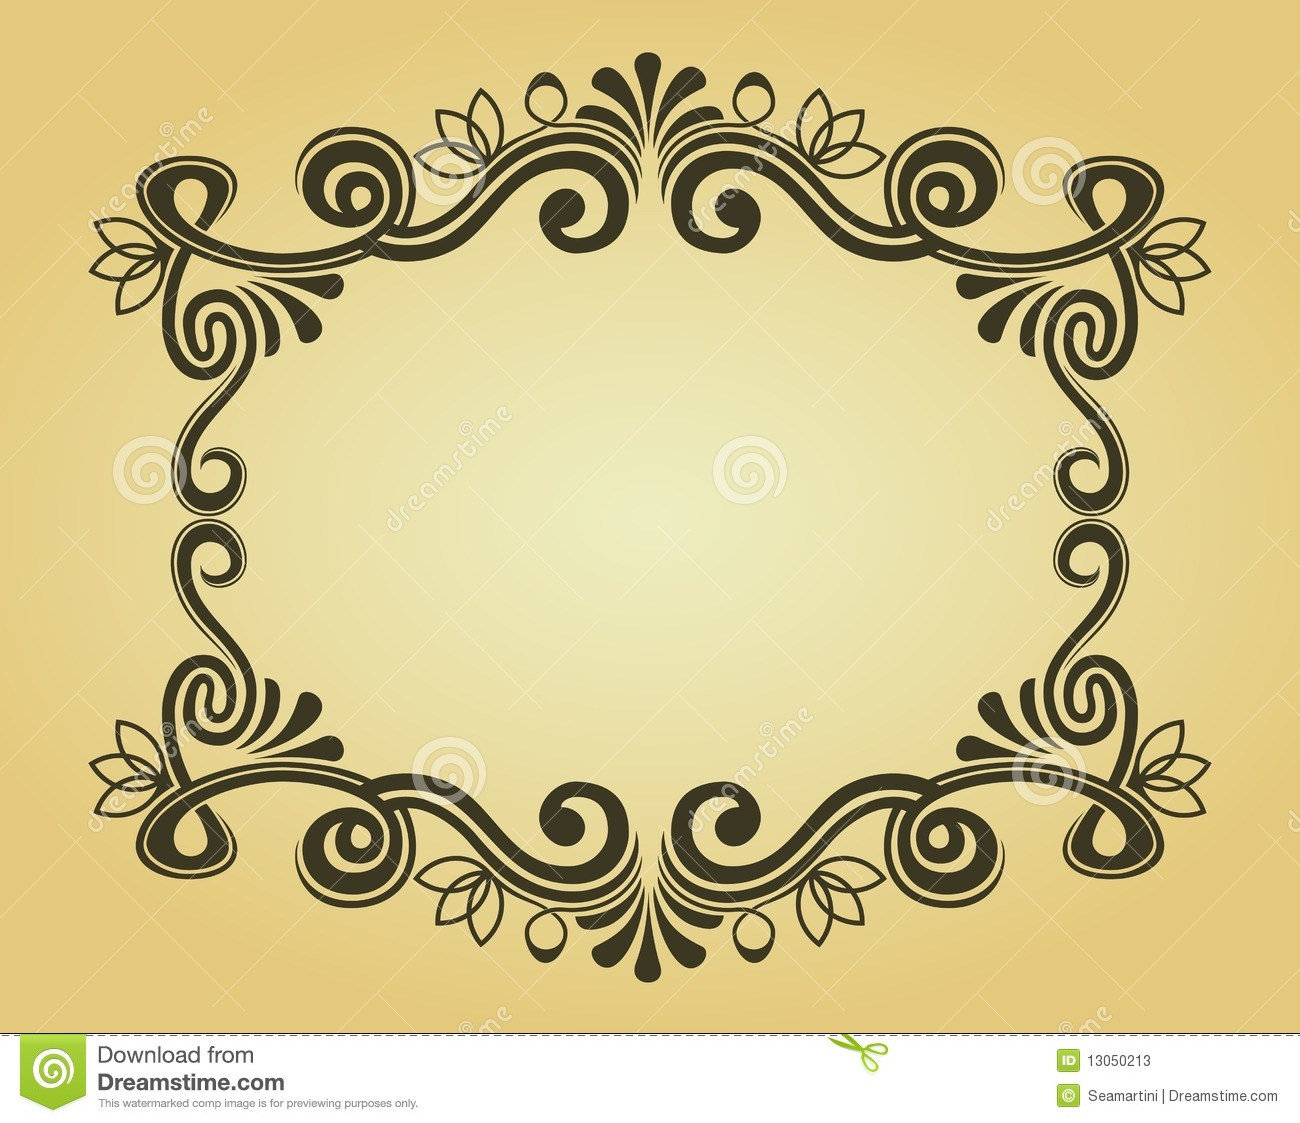 Vintage frame for design stock vector Illustration of elegance